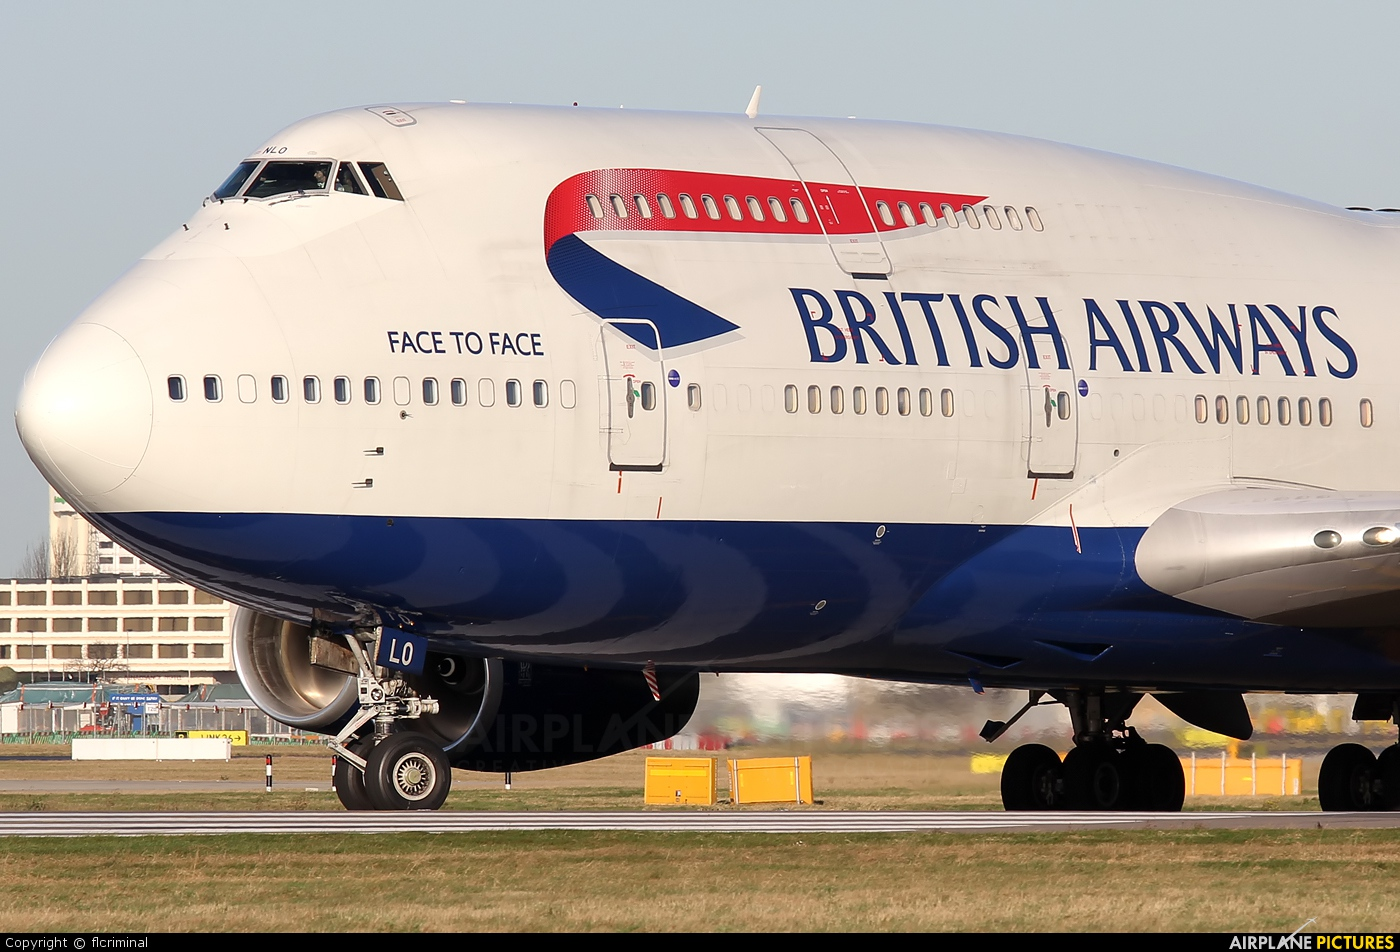 British Airways G-BNLO aircraft at London - Heathrow